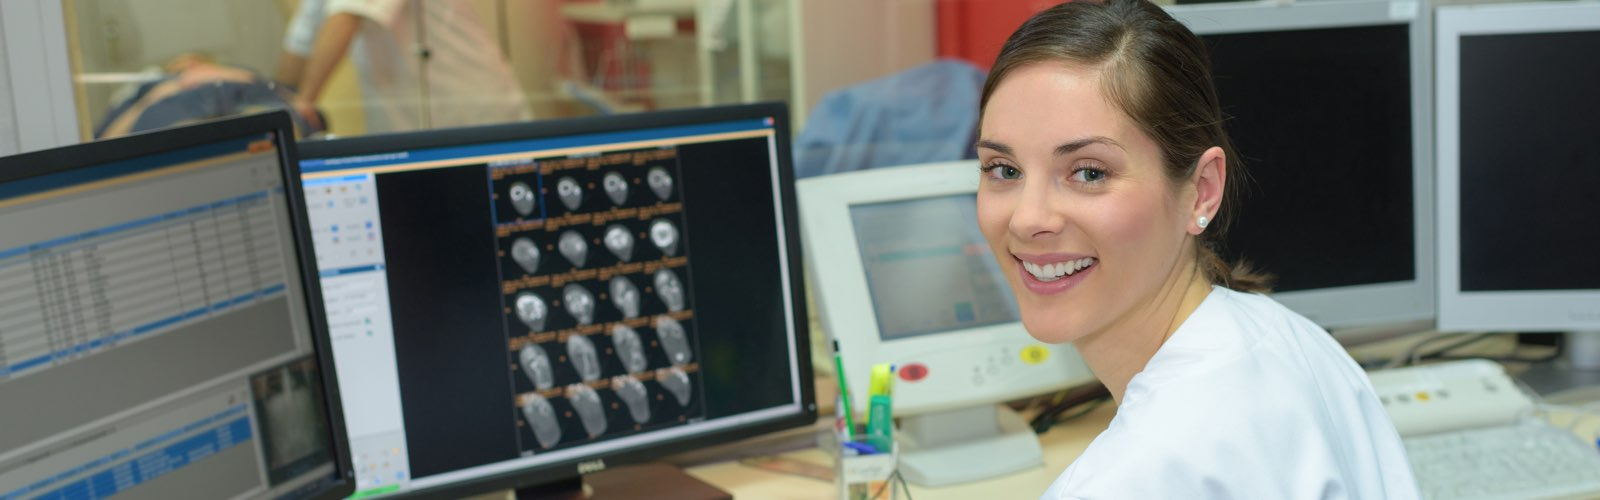 Female nurse in front of computer screen smiling